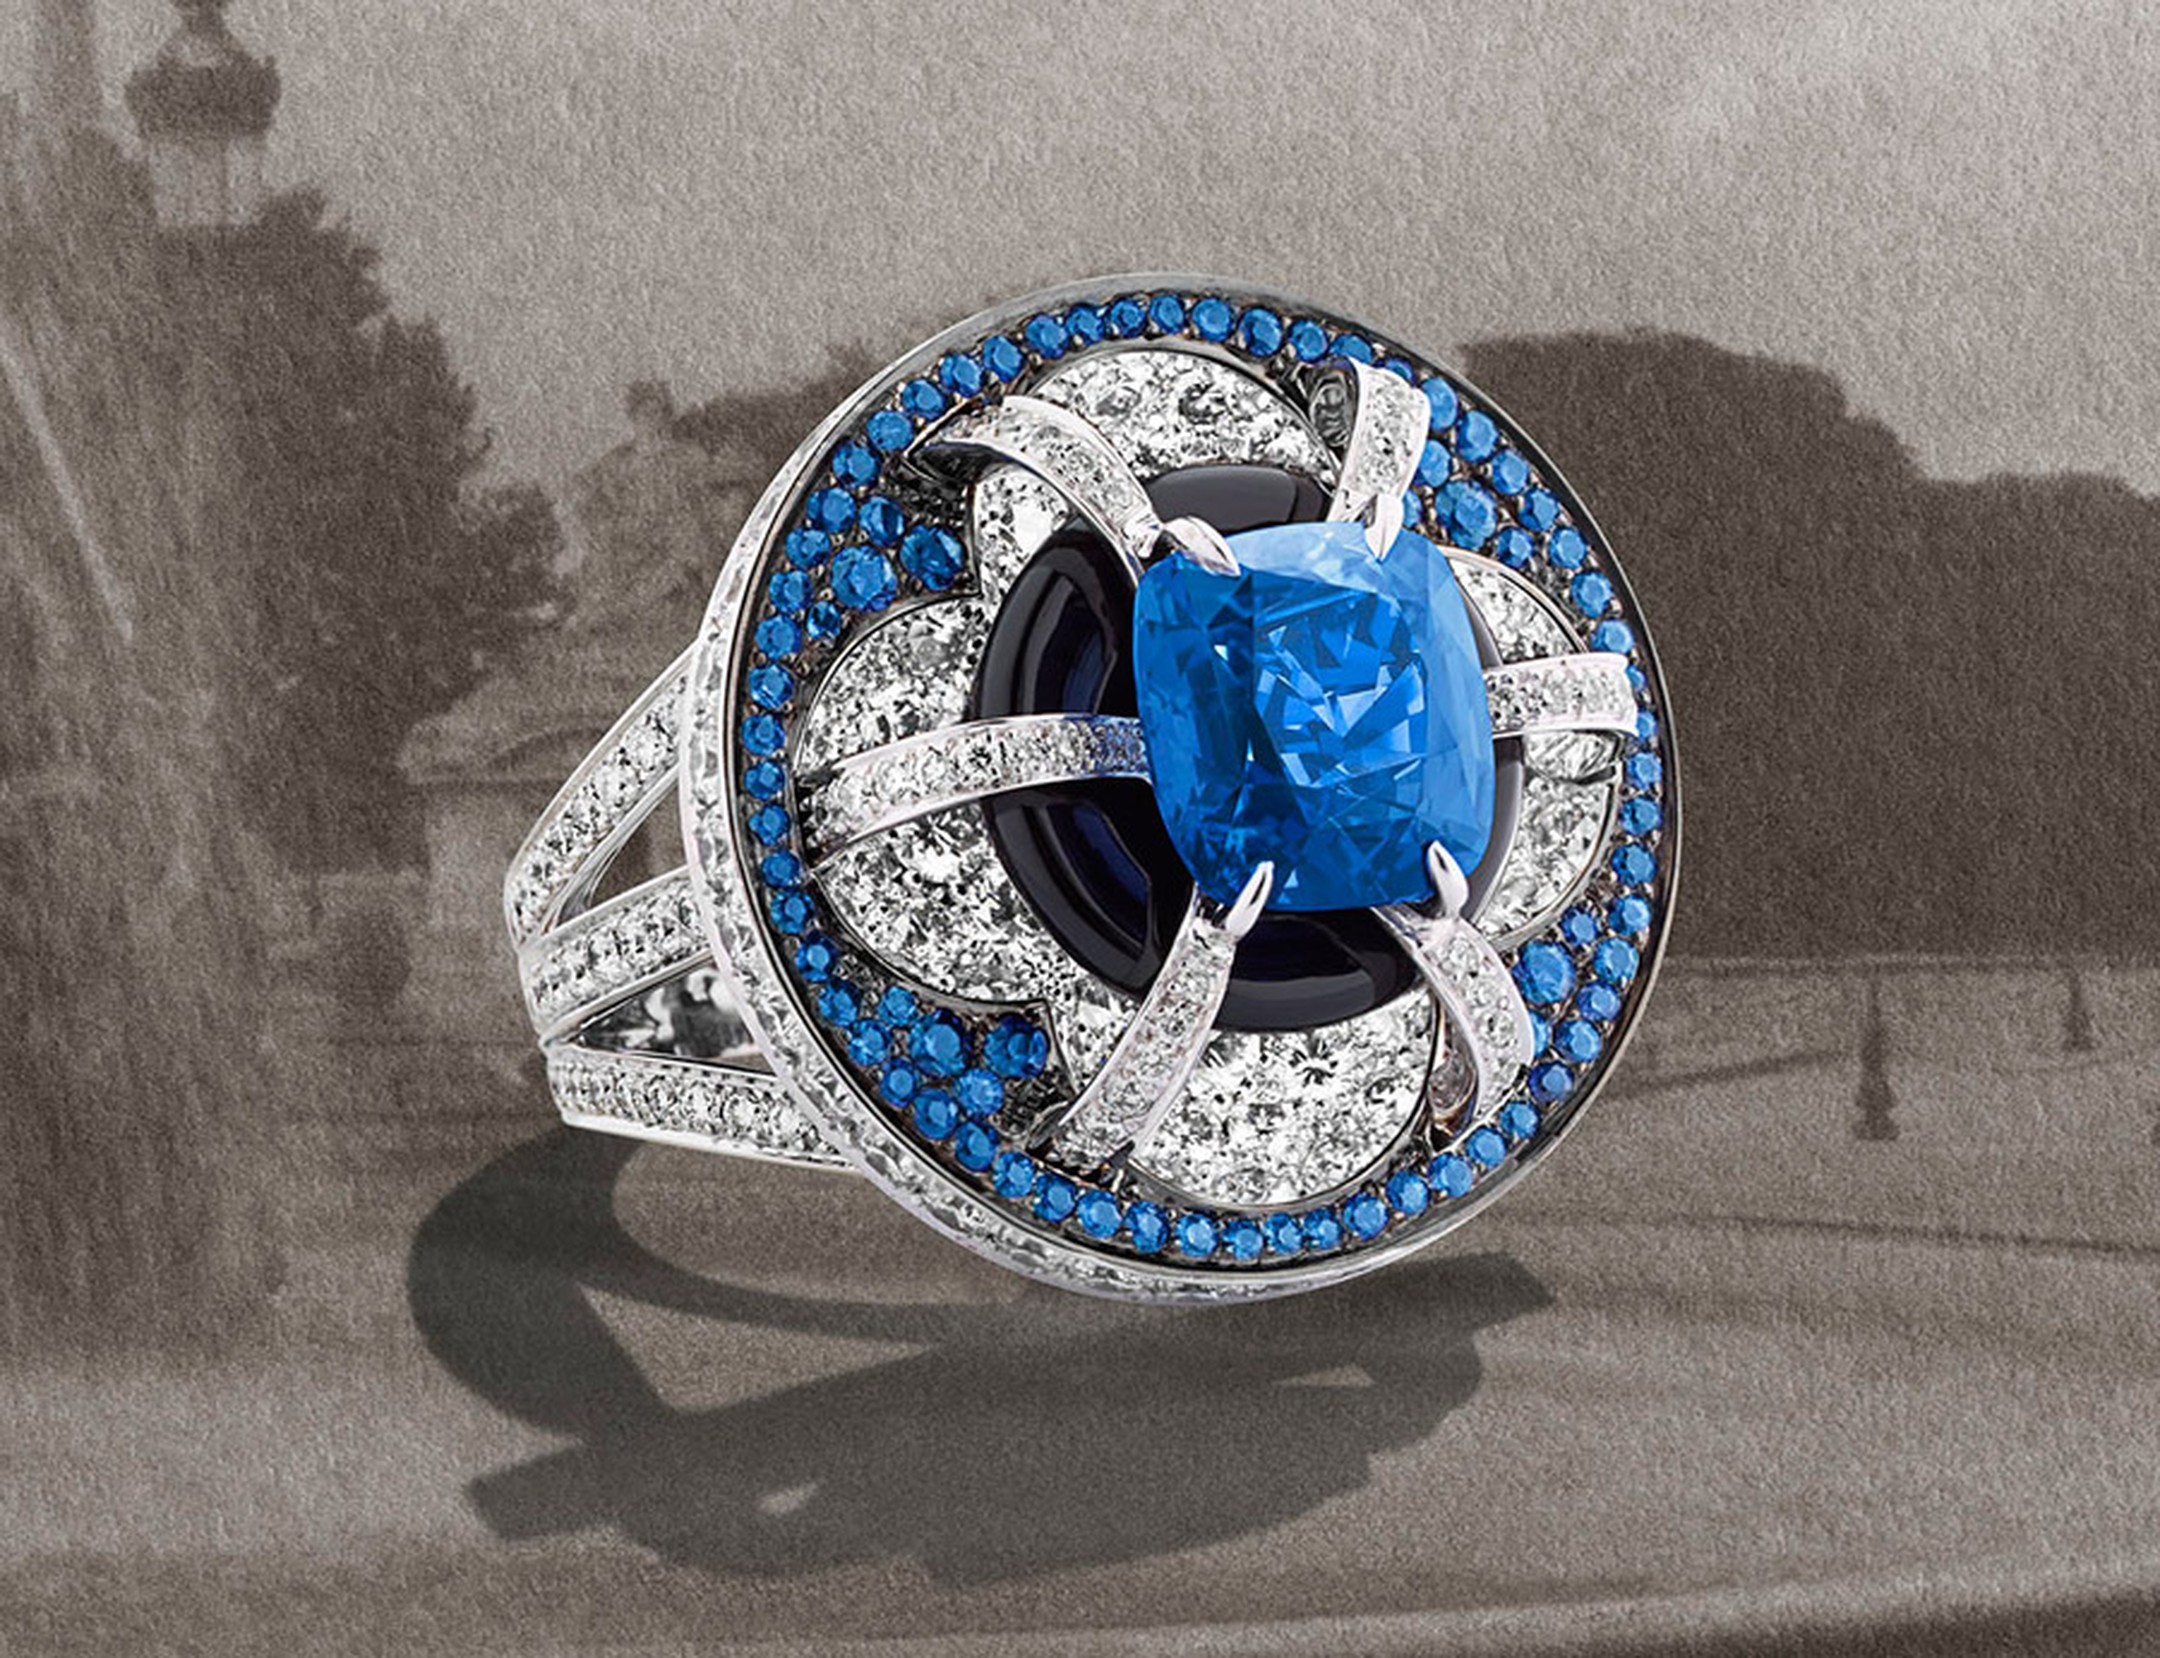 Fontaine ring by Louis Vuitton from the Escale á Paris high jewellery collection. Photograph by Coppi Barbieri for Louis Vuitton.